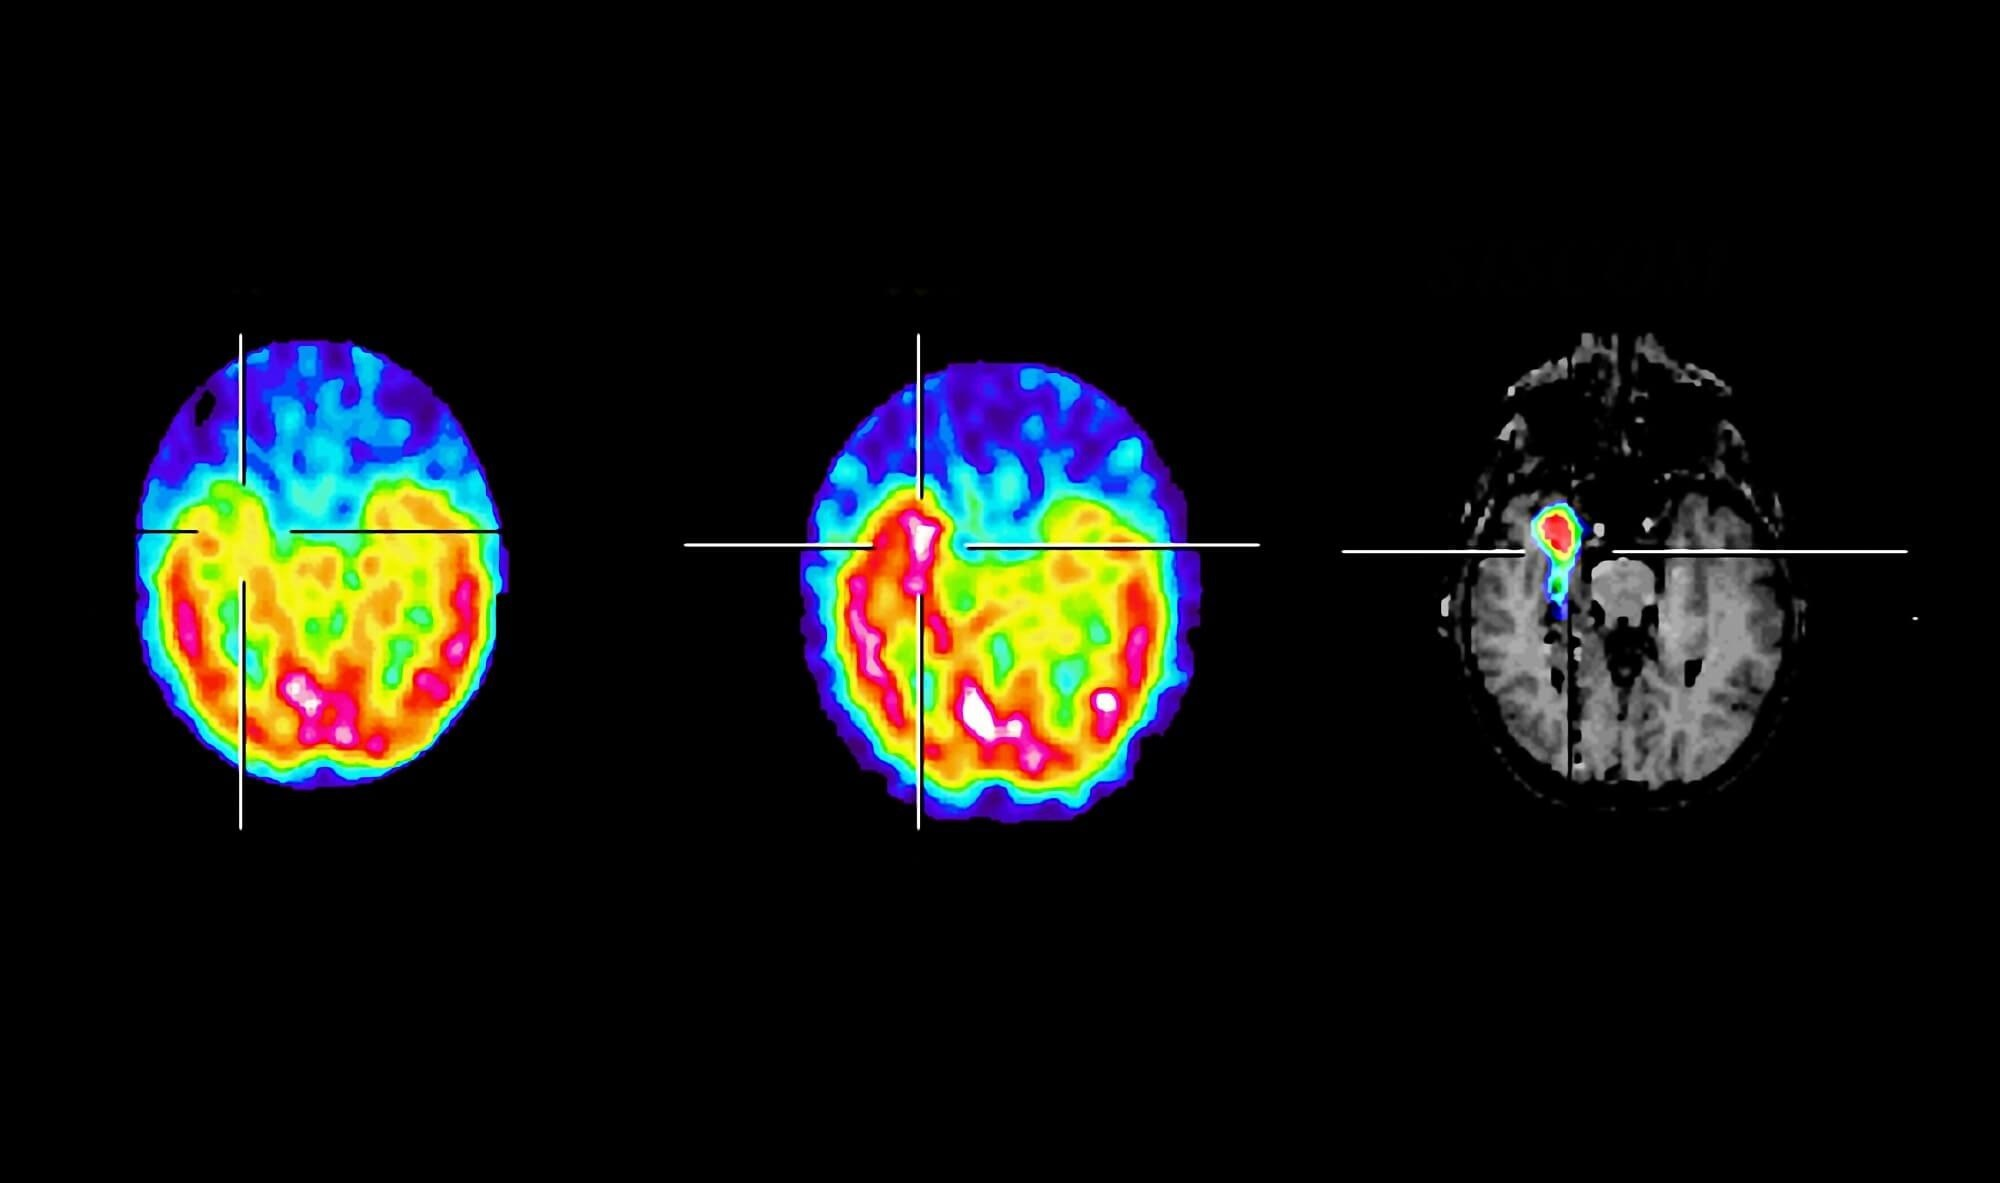 The investigators compared subcortical activation, or an increased ictal uptake vs the interictal uptake, and epilepsy characteristics between patients. <i>Credit:ISM / Dr Marie-Odile HABERT</i>